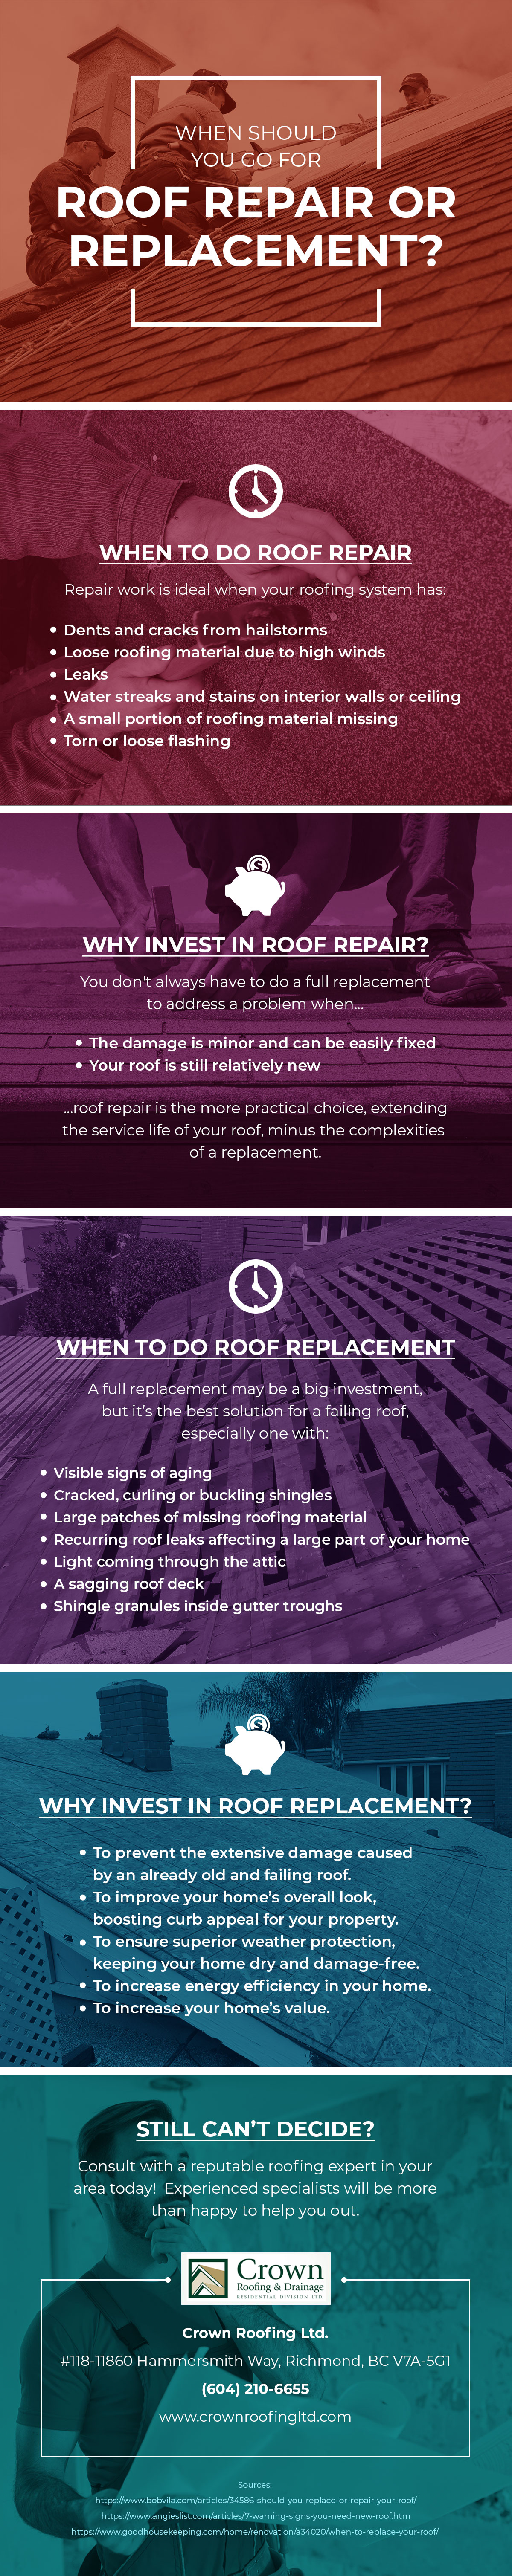 When Should You Go For Roof Repair or Replacement